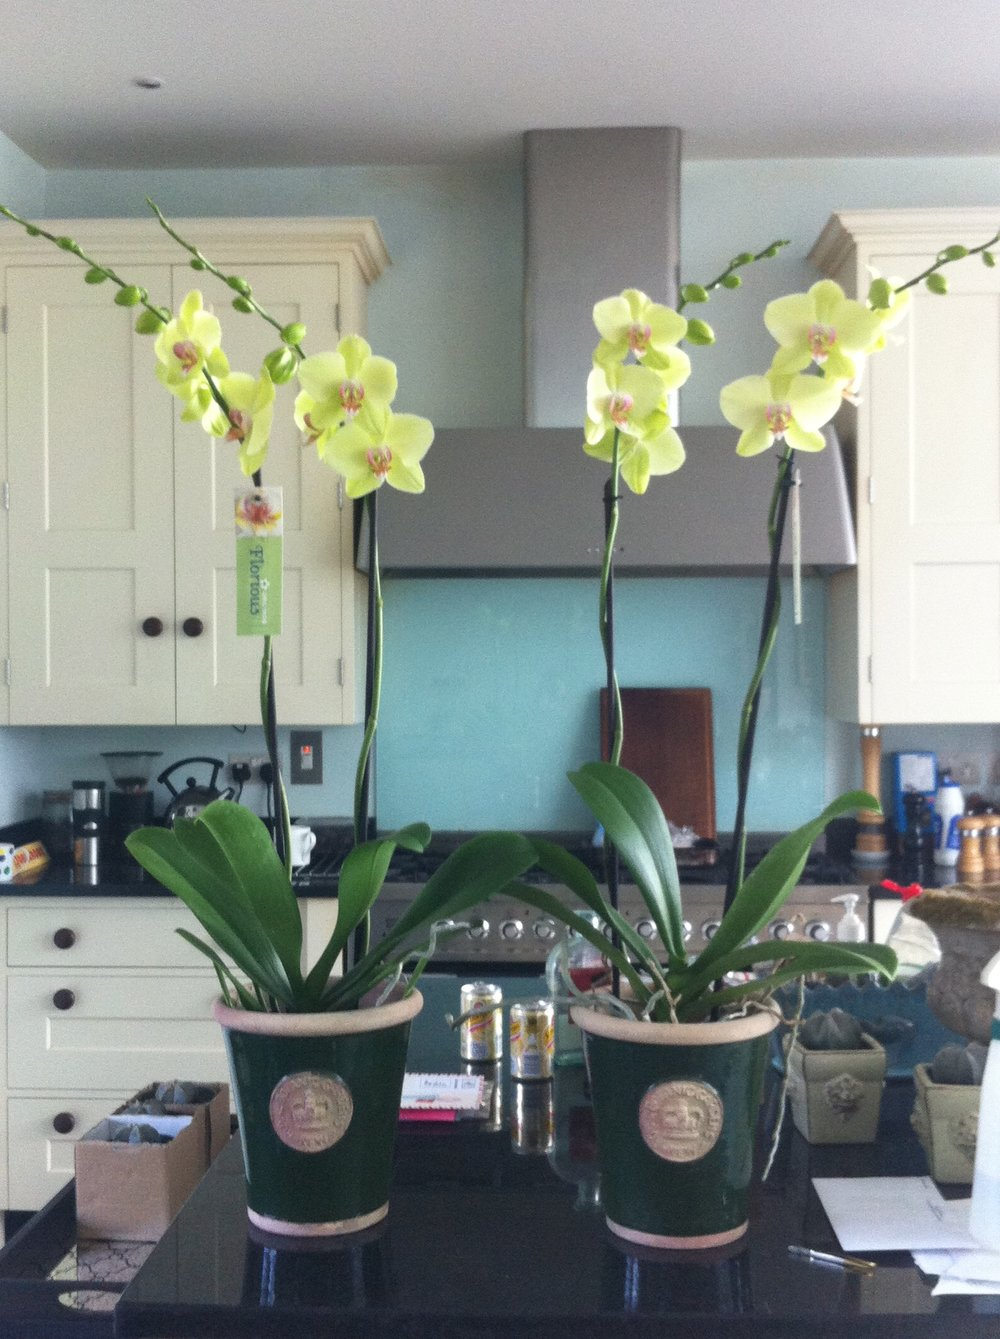 Medium Kew pots planted with green orchids - £49 each -